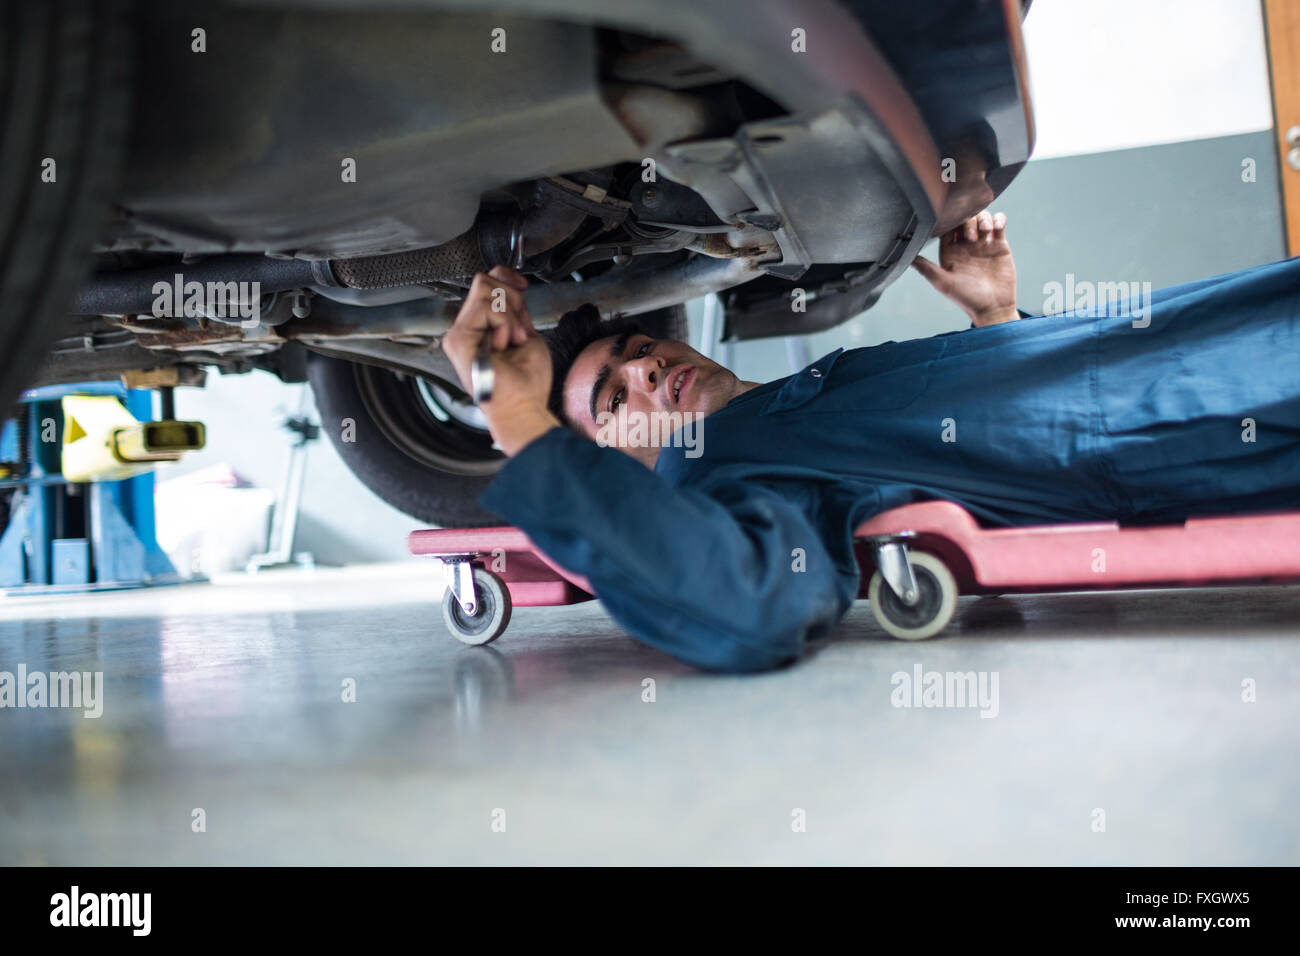 Mechanic repairing a car - Stock Image